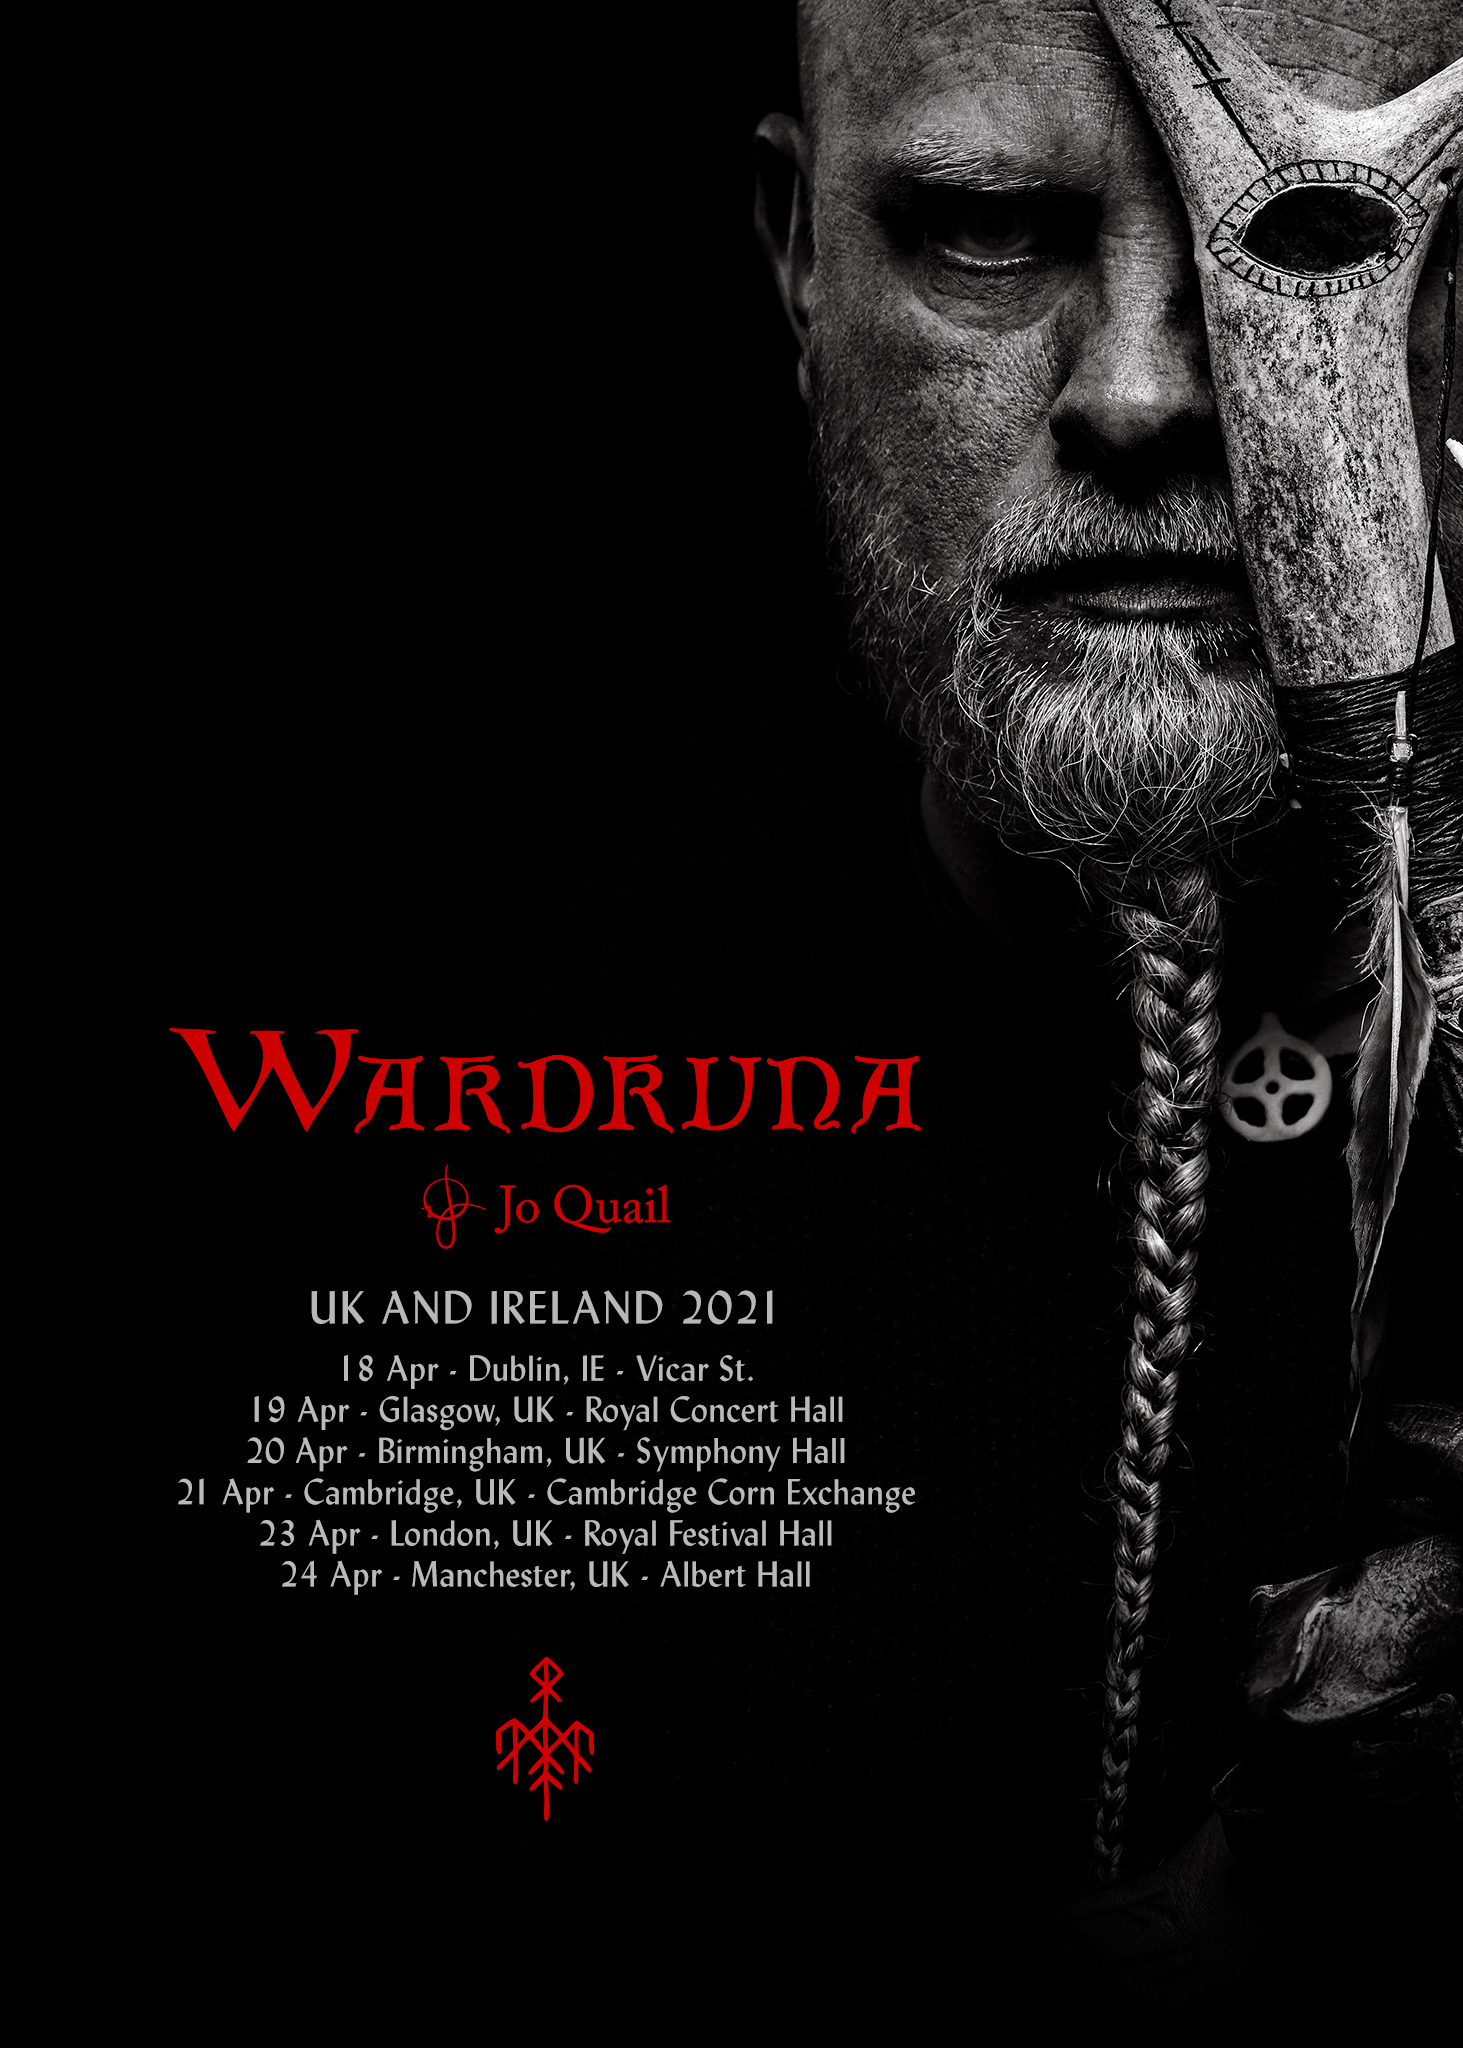 Wardruna UK and EU tour rescheduled for April 2021, all tickets remain valid. See you then!